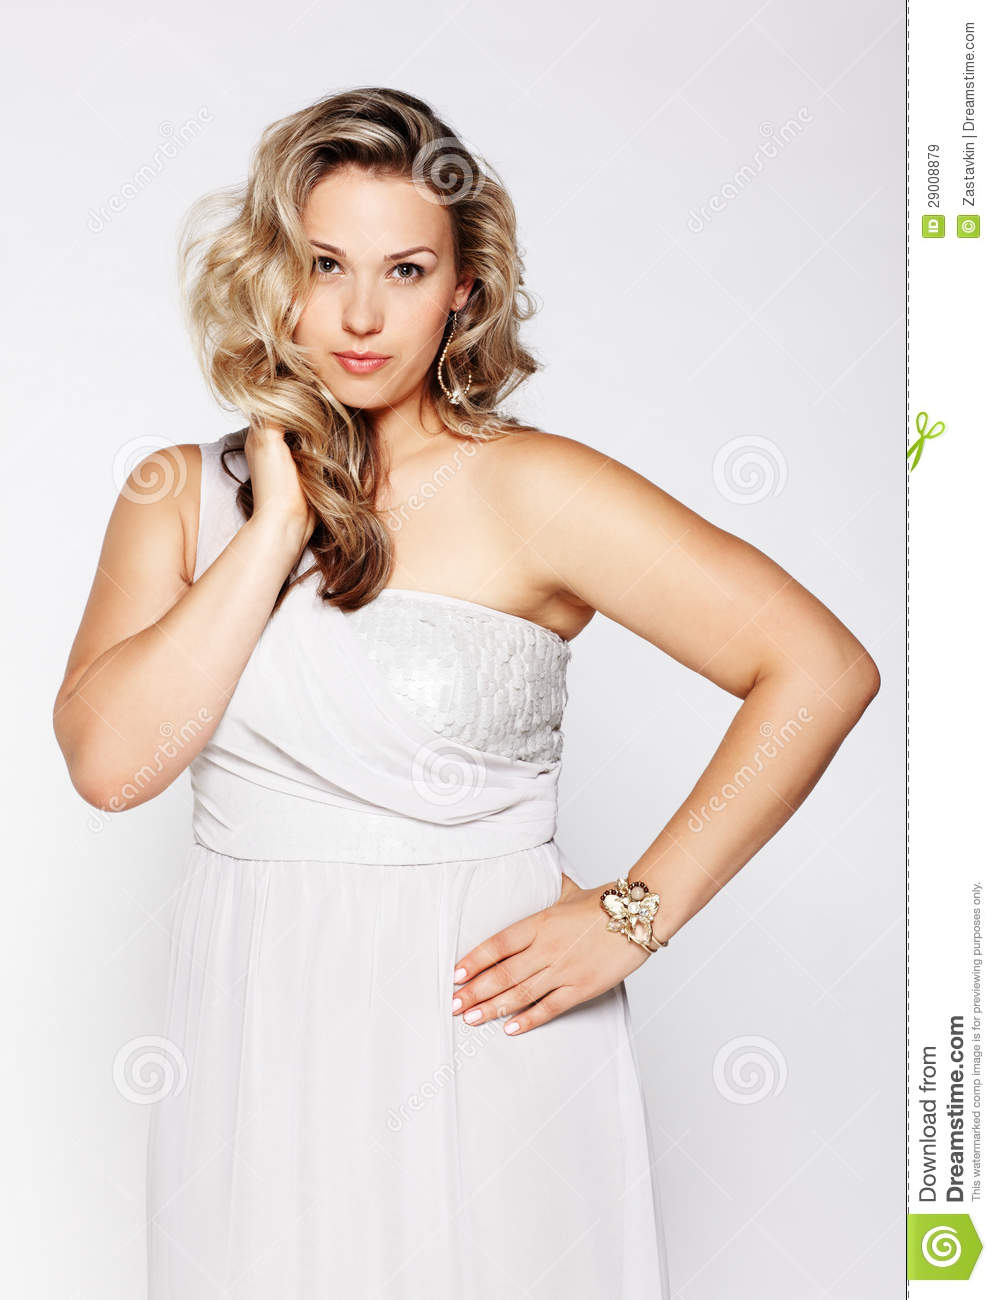 Beautiful Plus Size Woman Royalty Free Stock Images ...